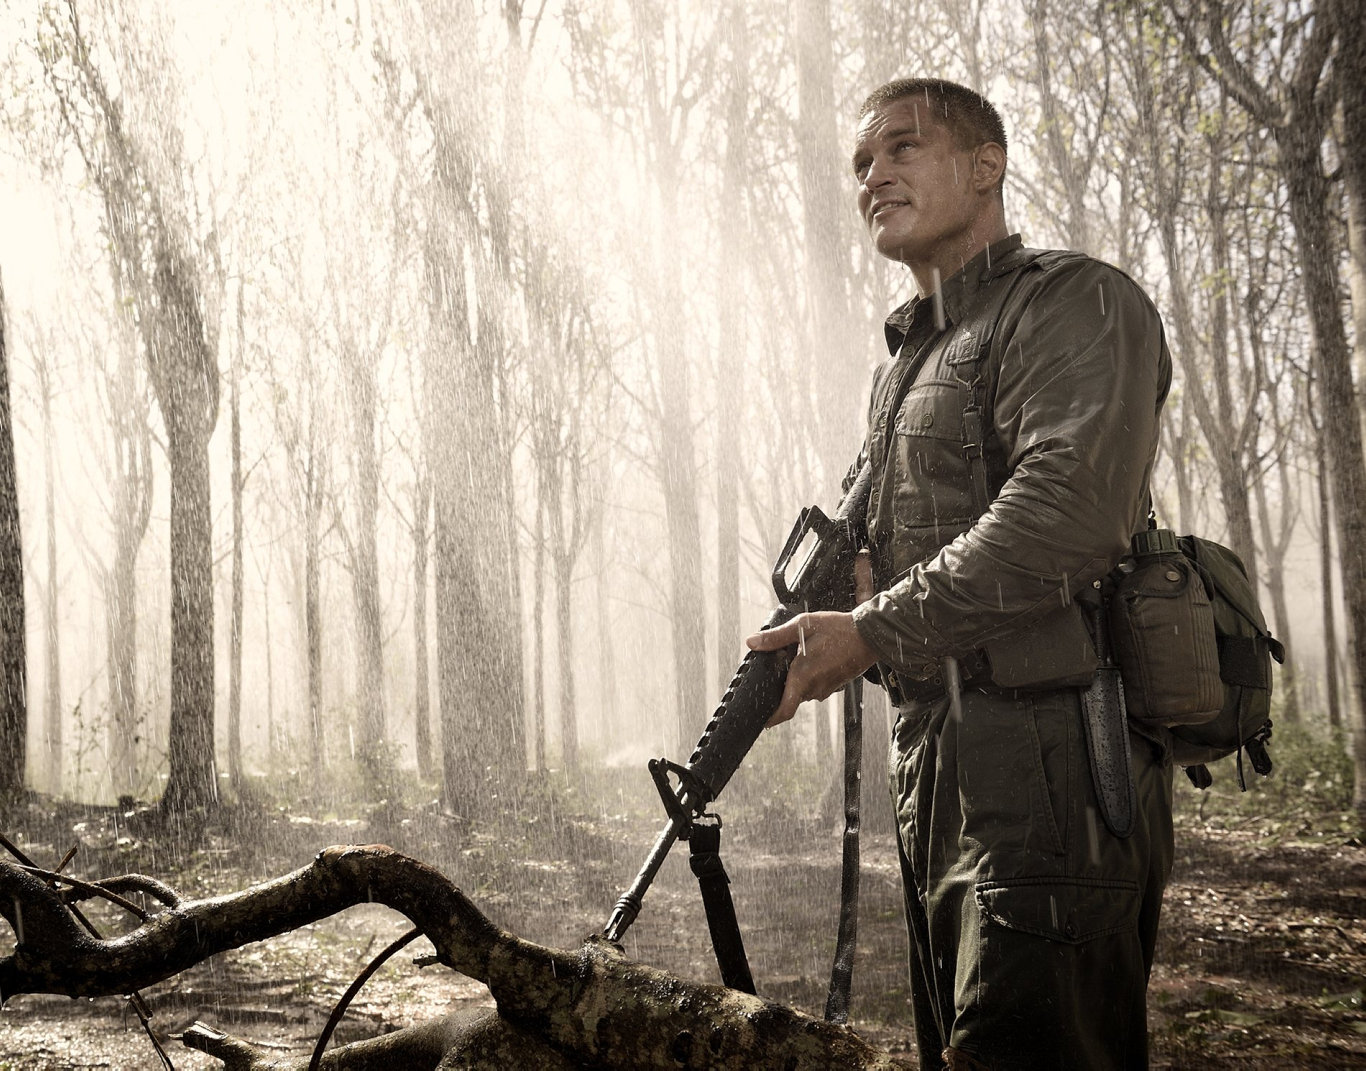 Travis Fimmel as Major Harry Smith in a scene from the movie Danger Close: The Battle of Long Tan.